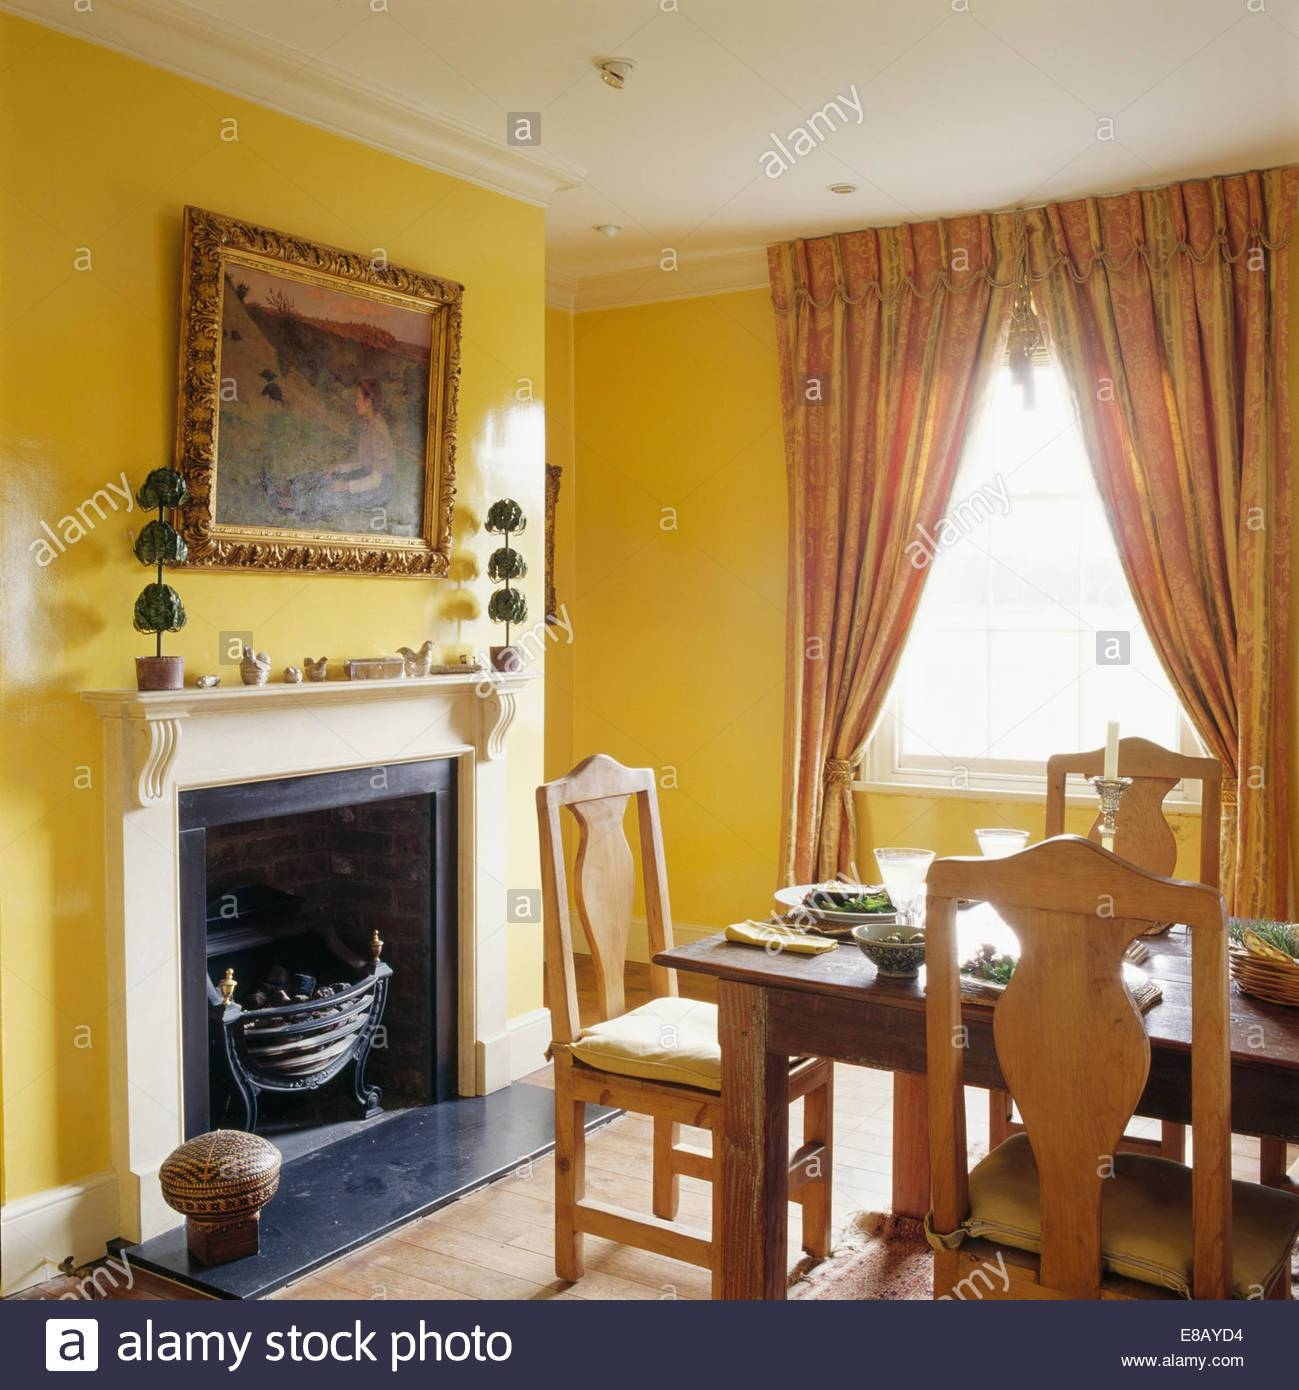 Large Gilt-Framed Mirror Above Fireplace In Yellow Dining Room throughout Large Gilt Framed Mirrors (Image 4 of 15)